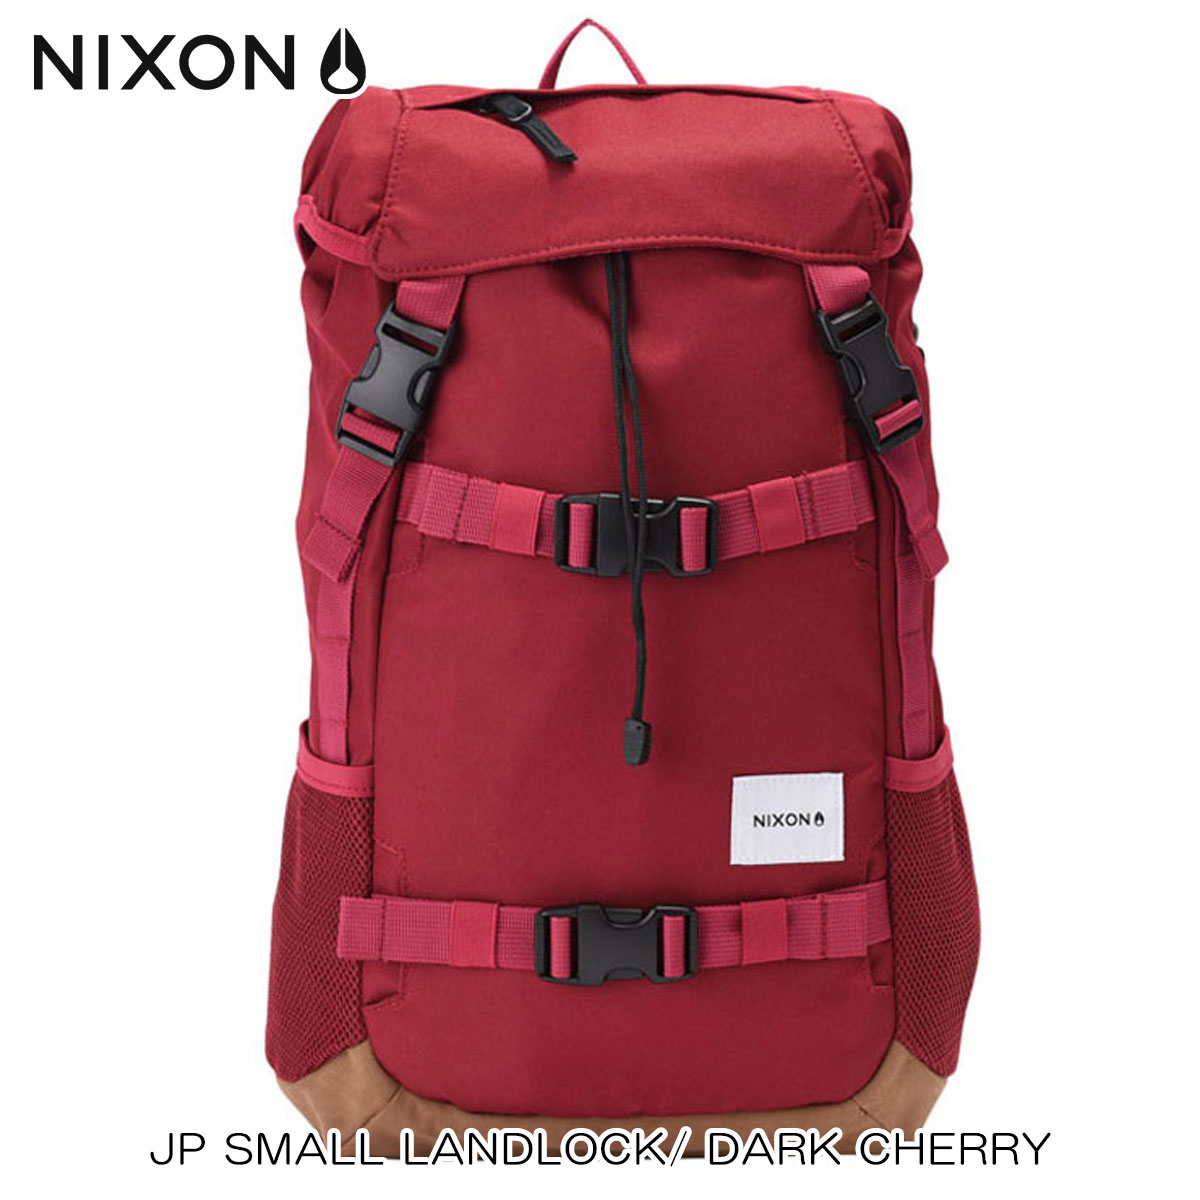 ニクソン NIXON 正規販売店 バッグ JP SMALL LANDLOCK/ DARK CHERRY NC22562329-00 D00S20